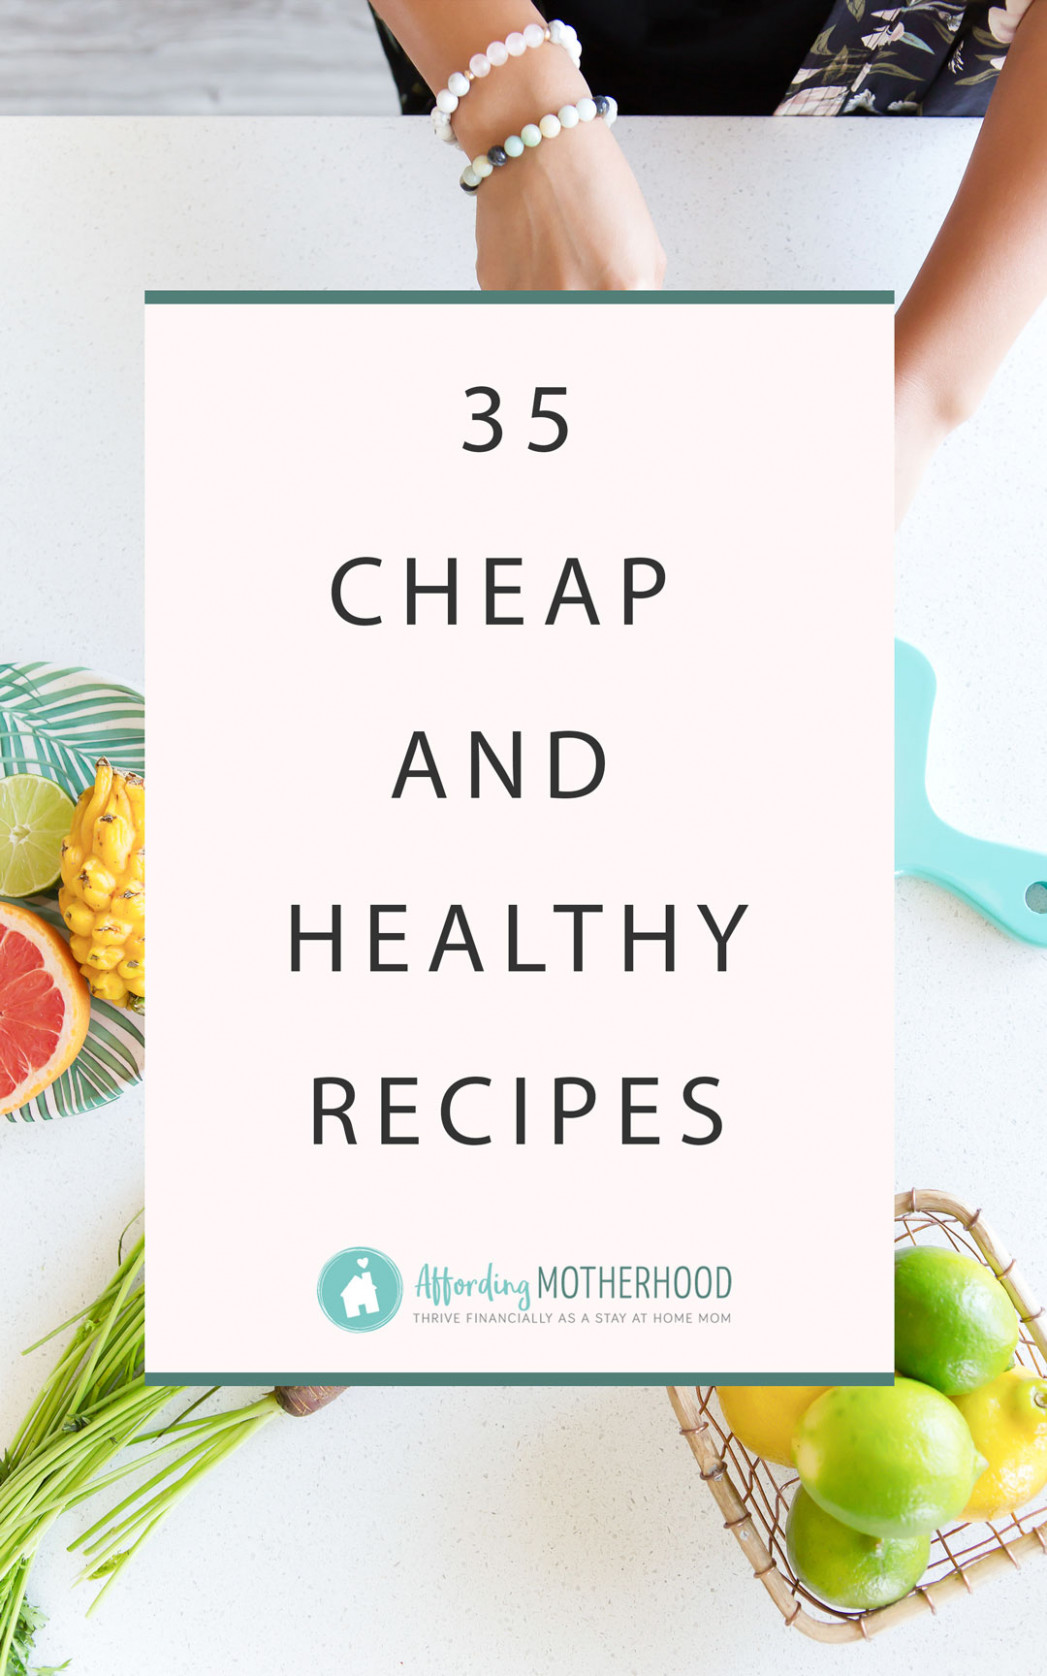 35 Cheap and Healthy Recipes - Meal Ideas on a Tight Budget - healthy recipes on a budget